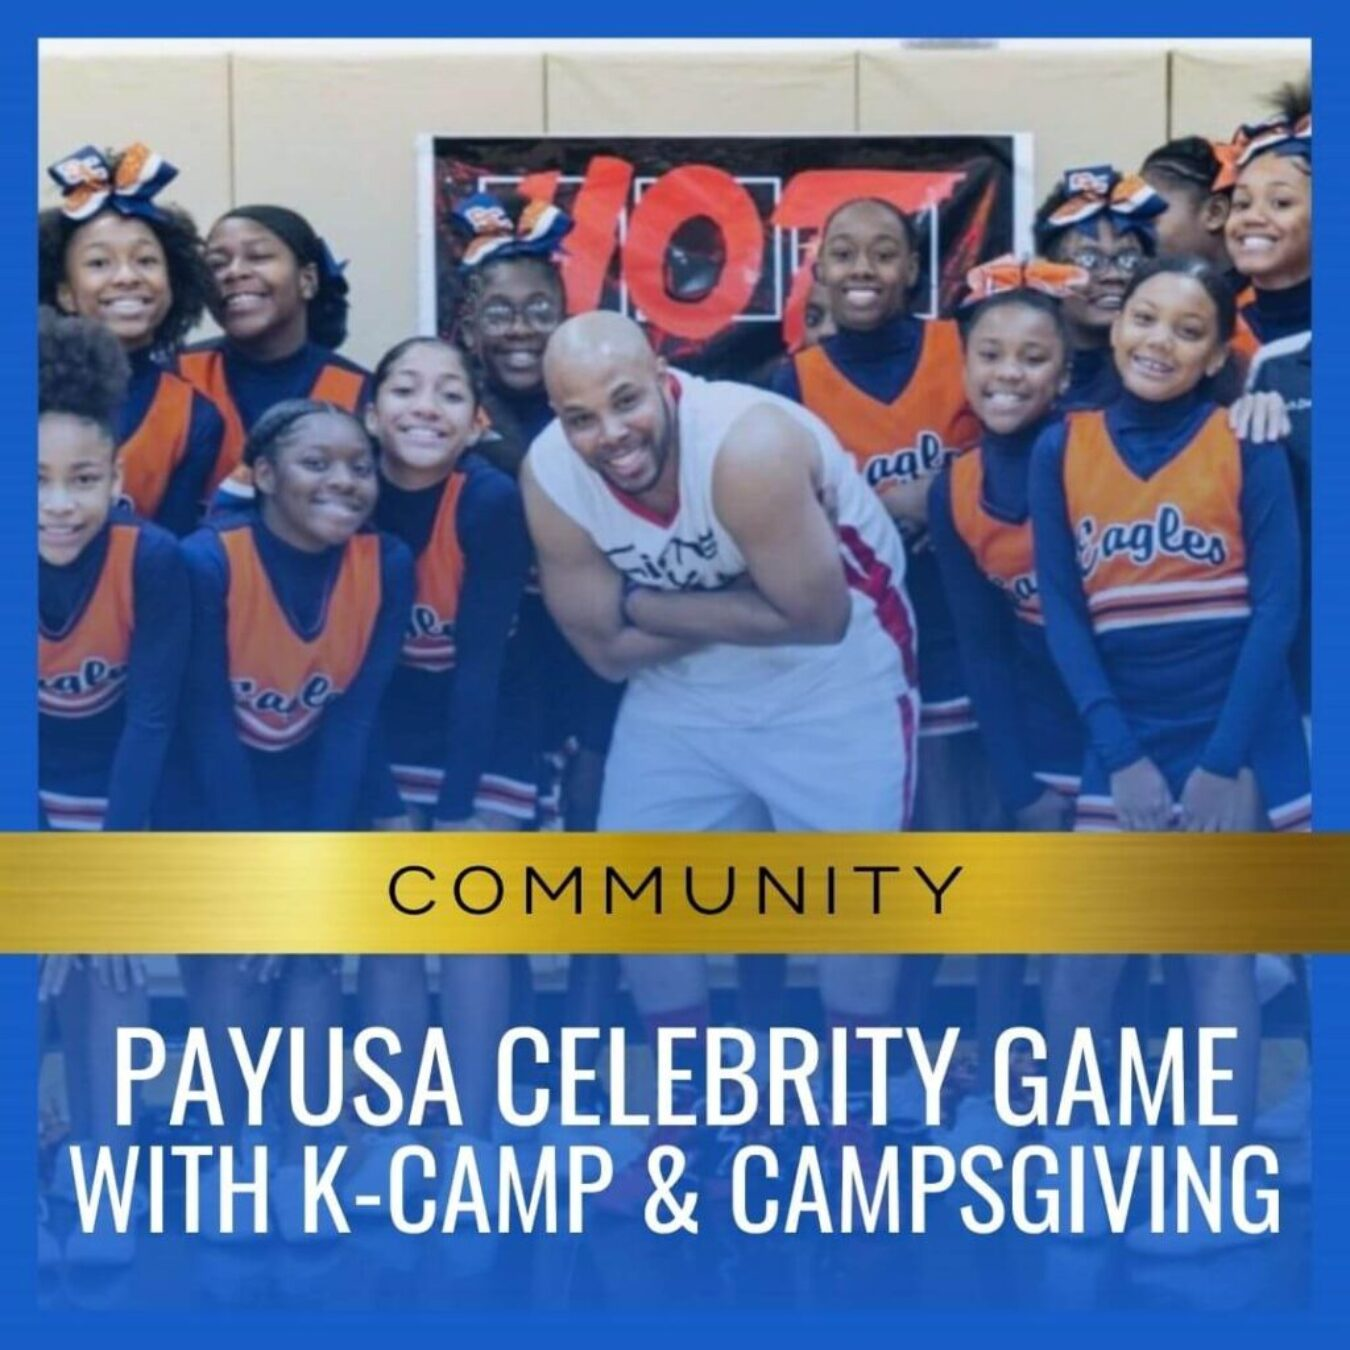 PayUSA CELEBRITY game with K-camp & Campsgiving